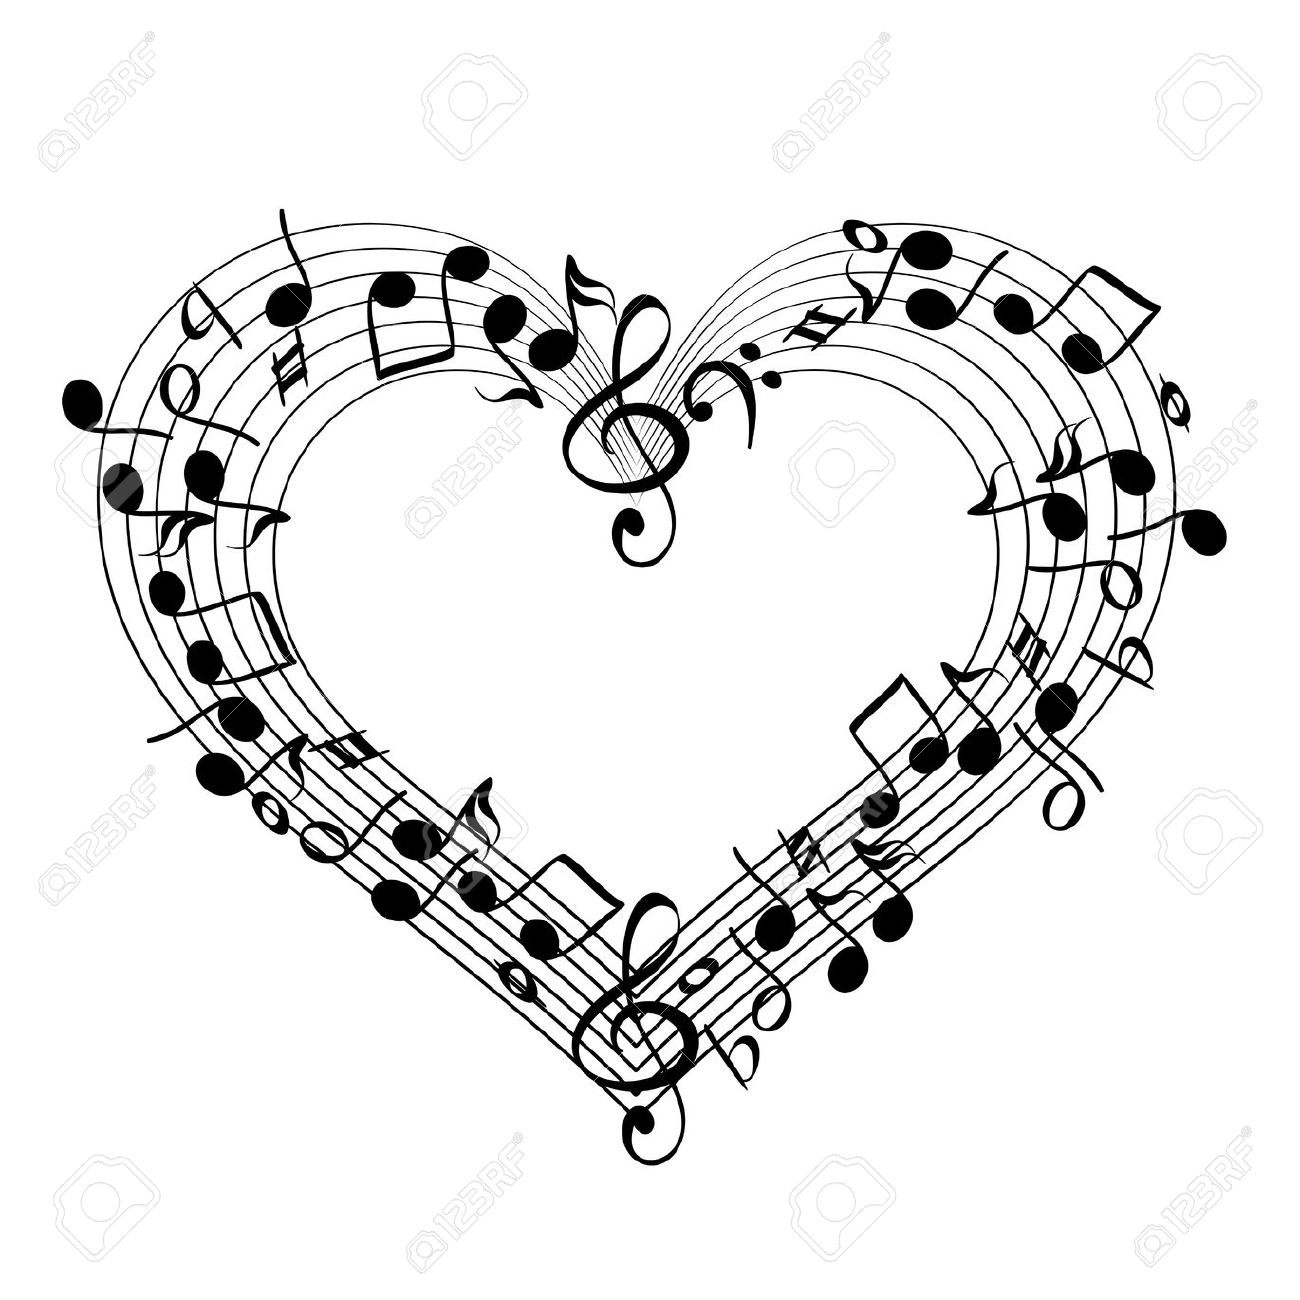 Music Notes Heart Clipart | Clipart Panda - Free Clipart ...